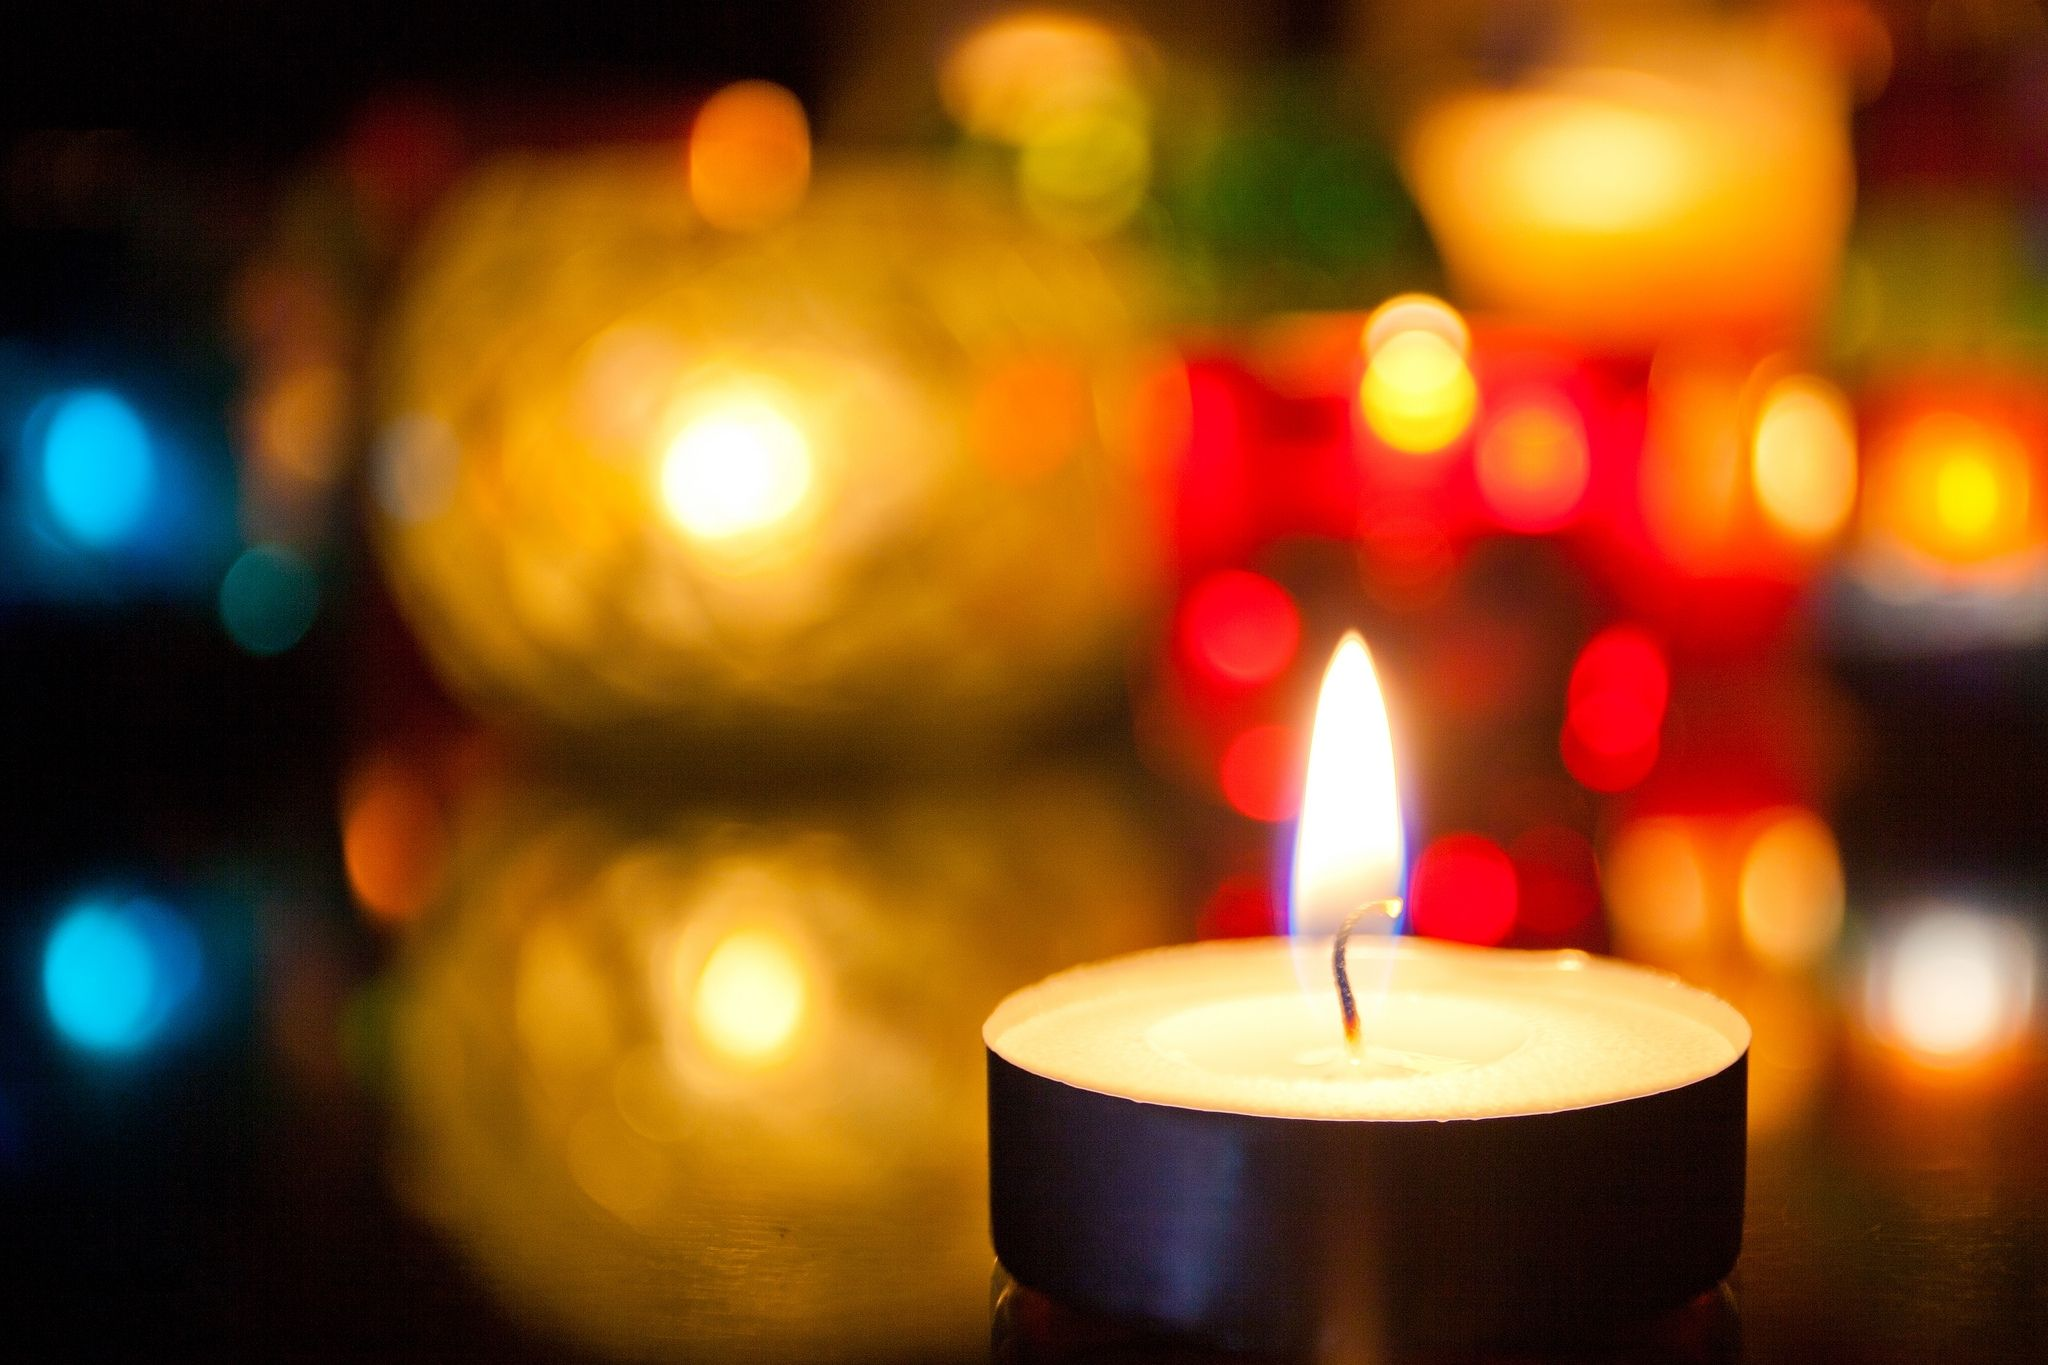 lighted candle images